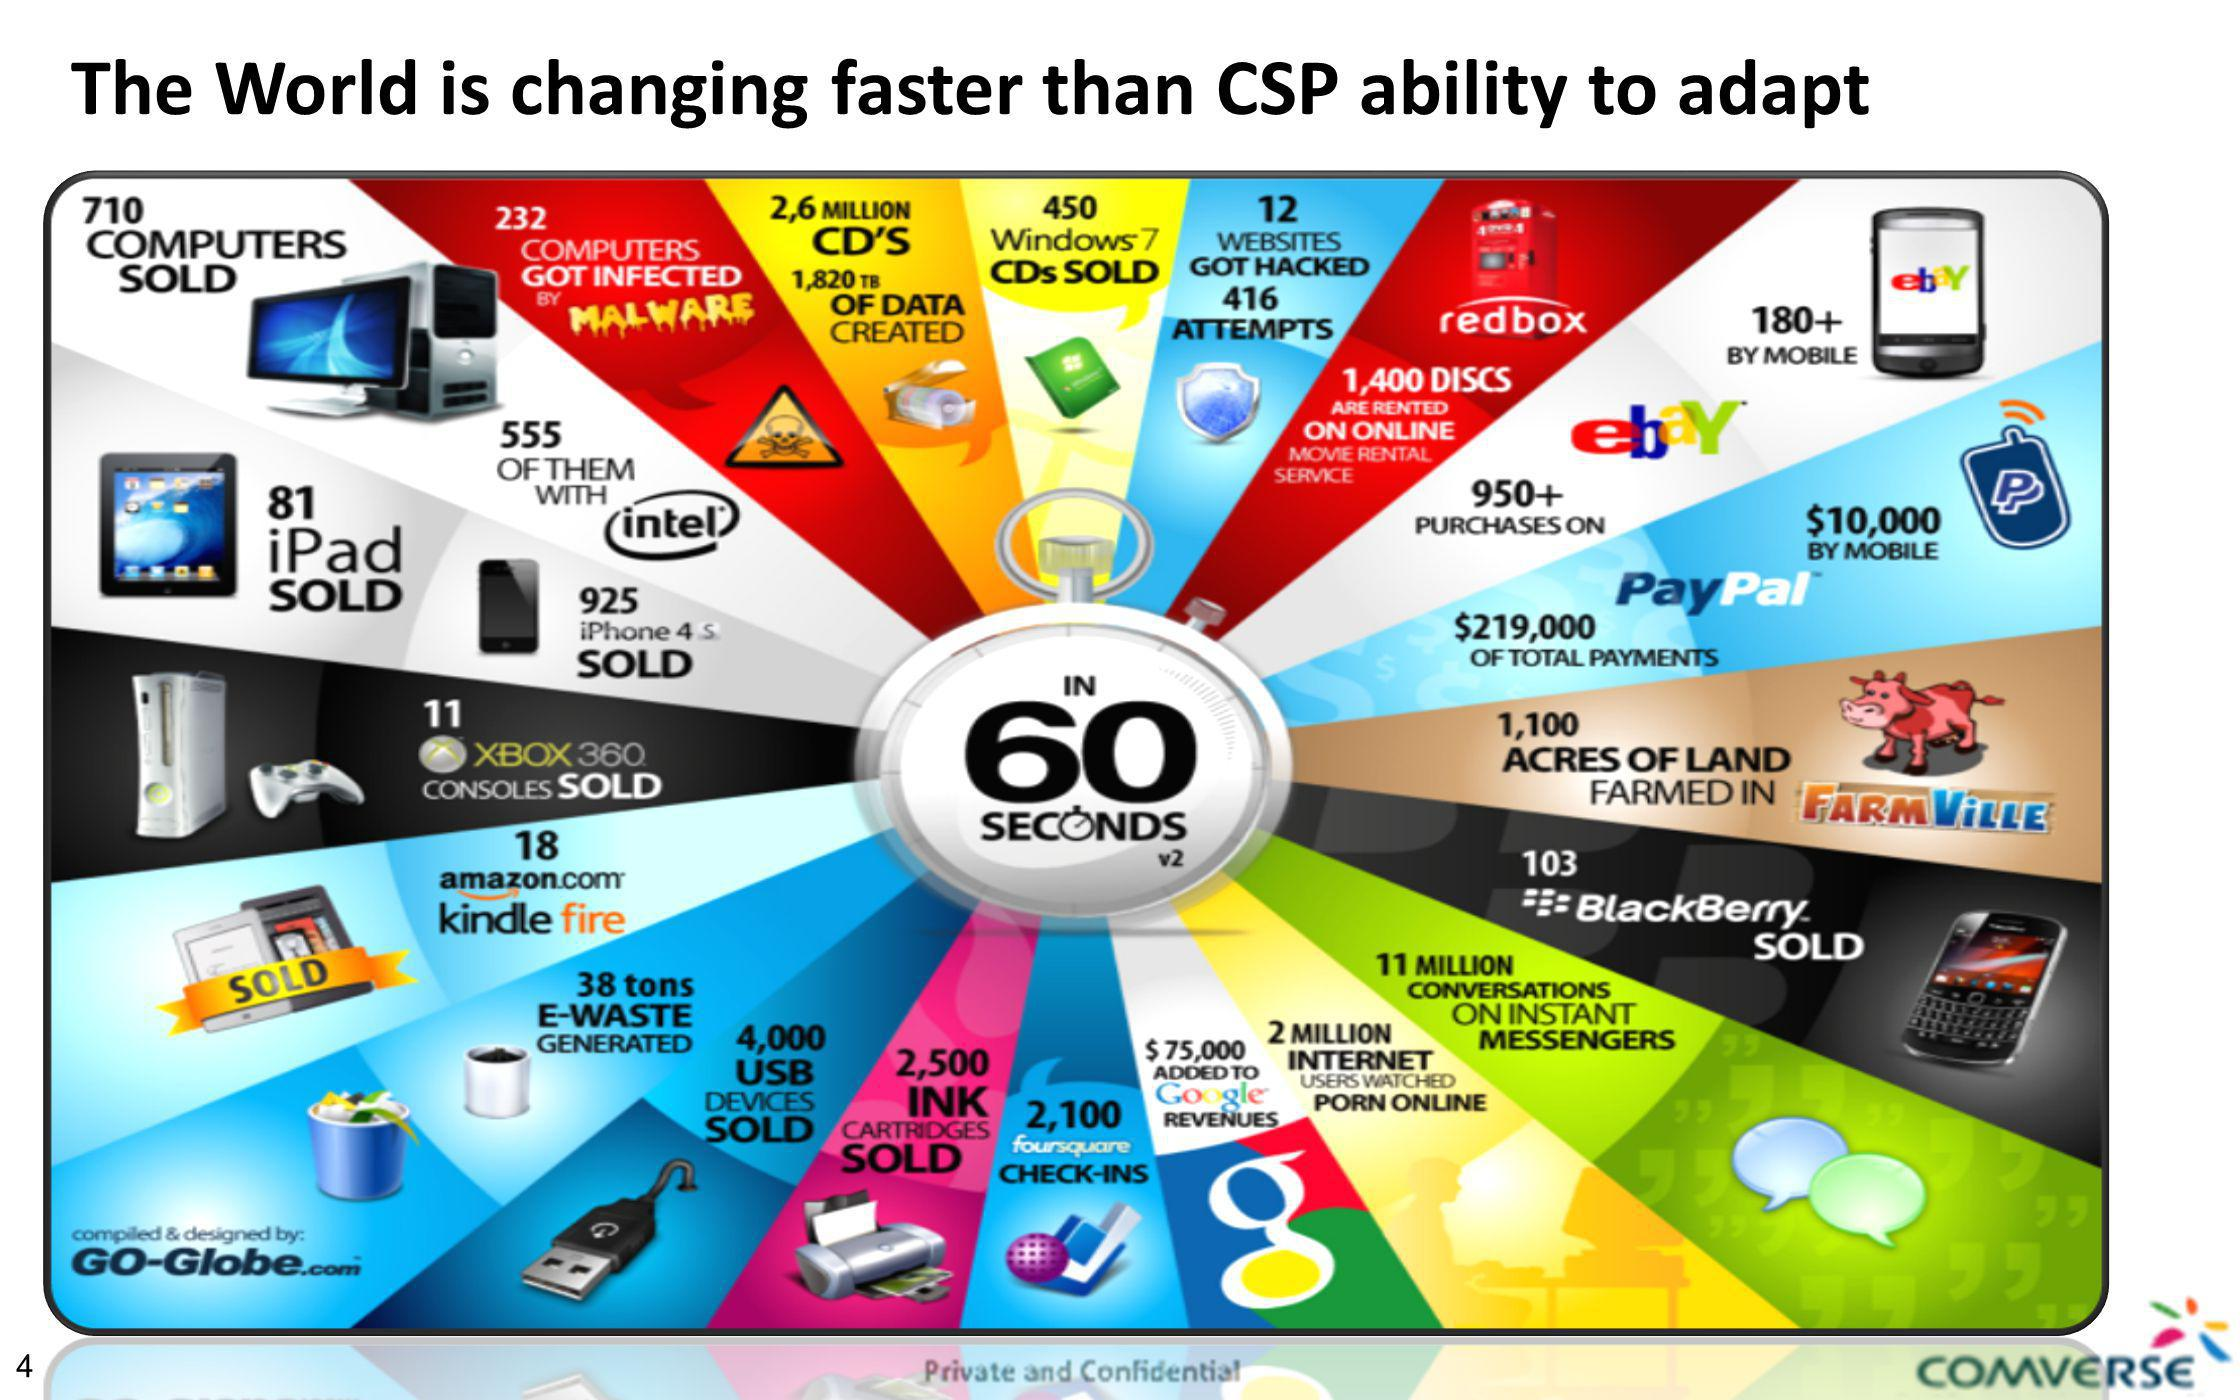 15 15 Comverse innovations to enable Ubiquitous Broadband What s in it for you and your customers.